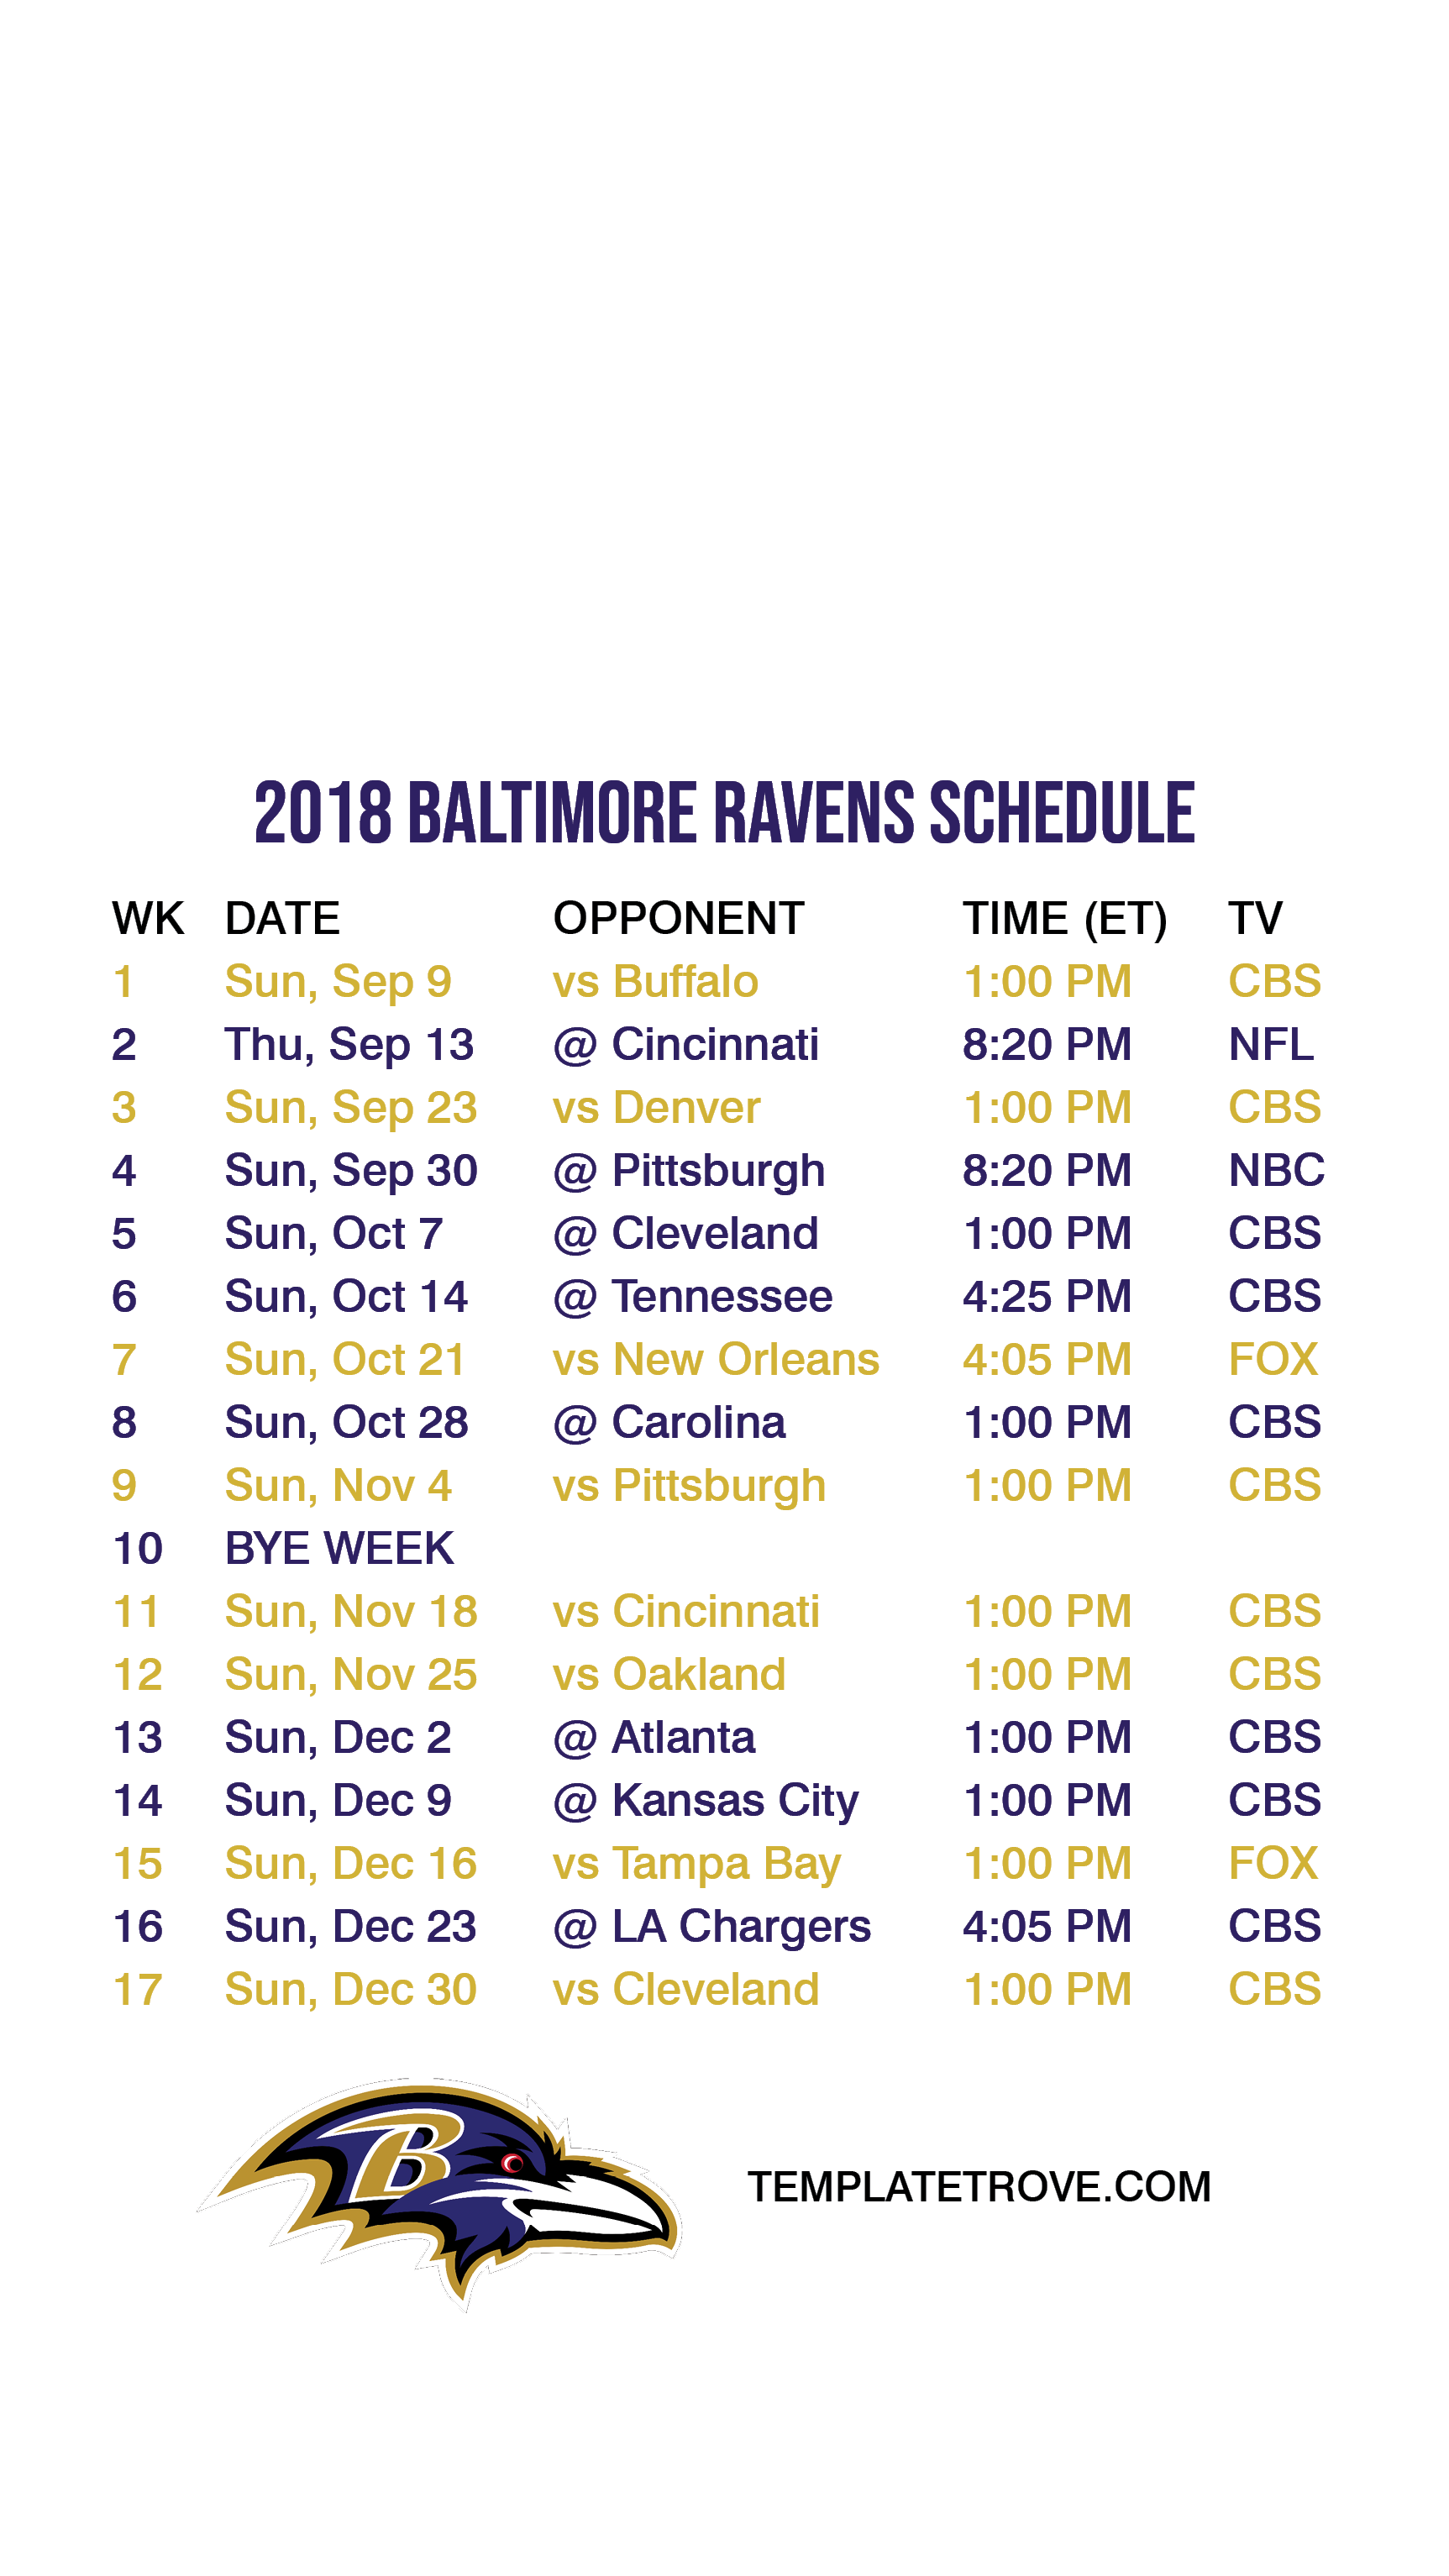 2018 2019 Baltimore Ravens Lock Screen Schedule for iPhone 6 7 8 Plus 1725x3067